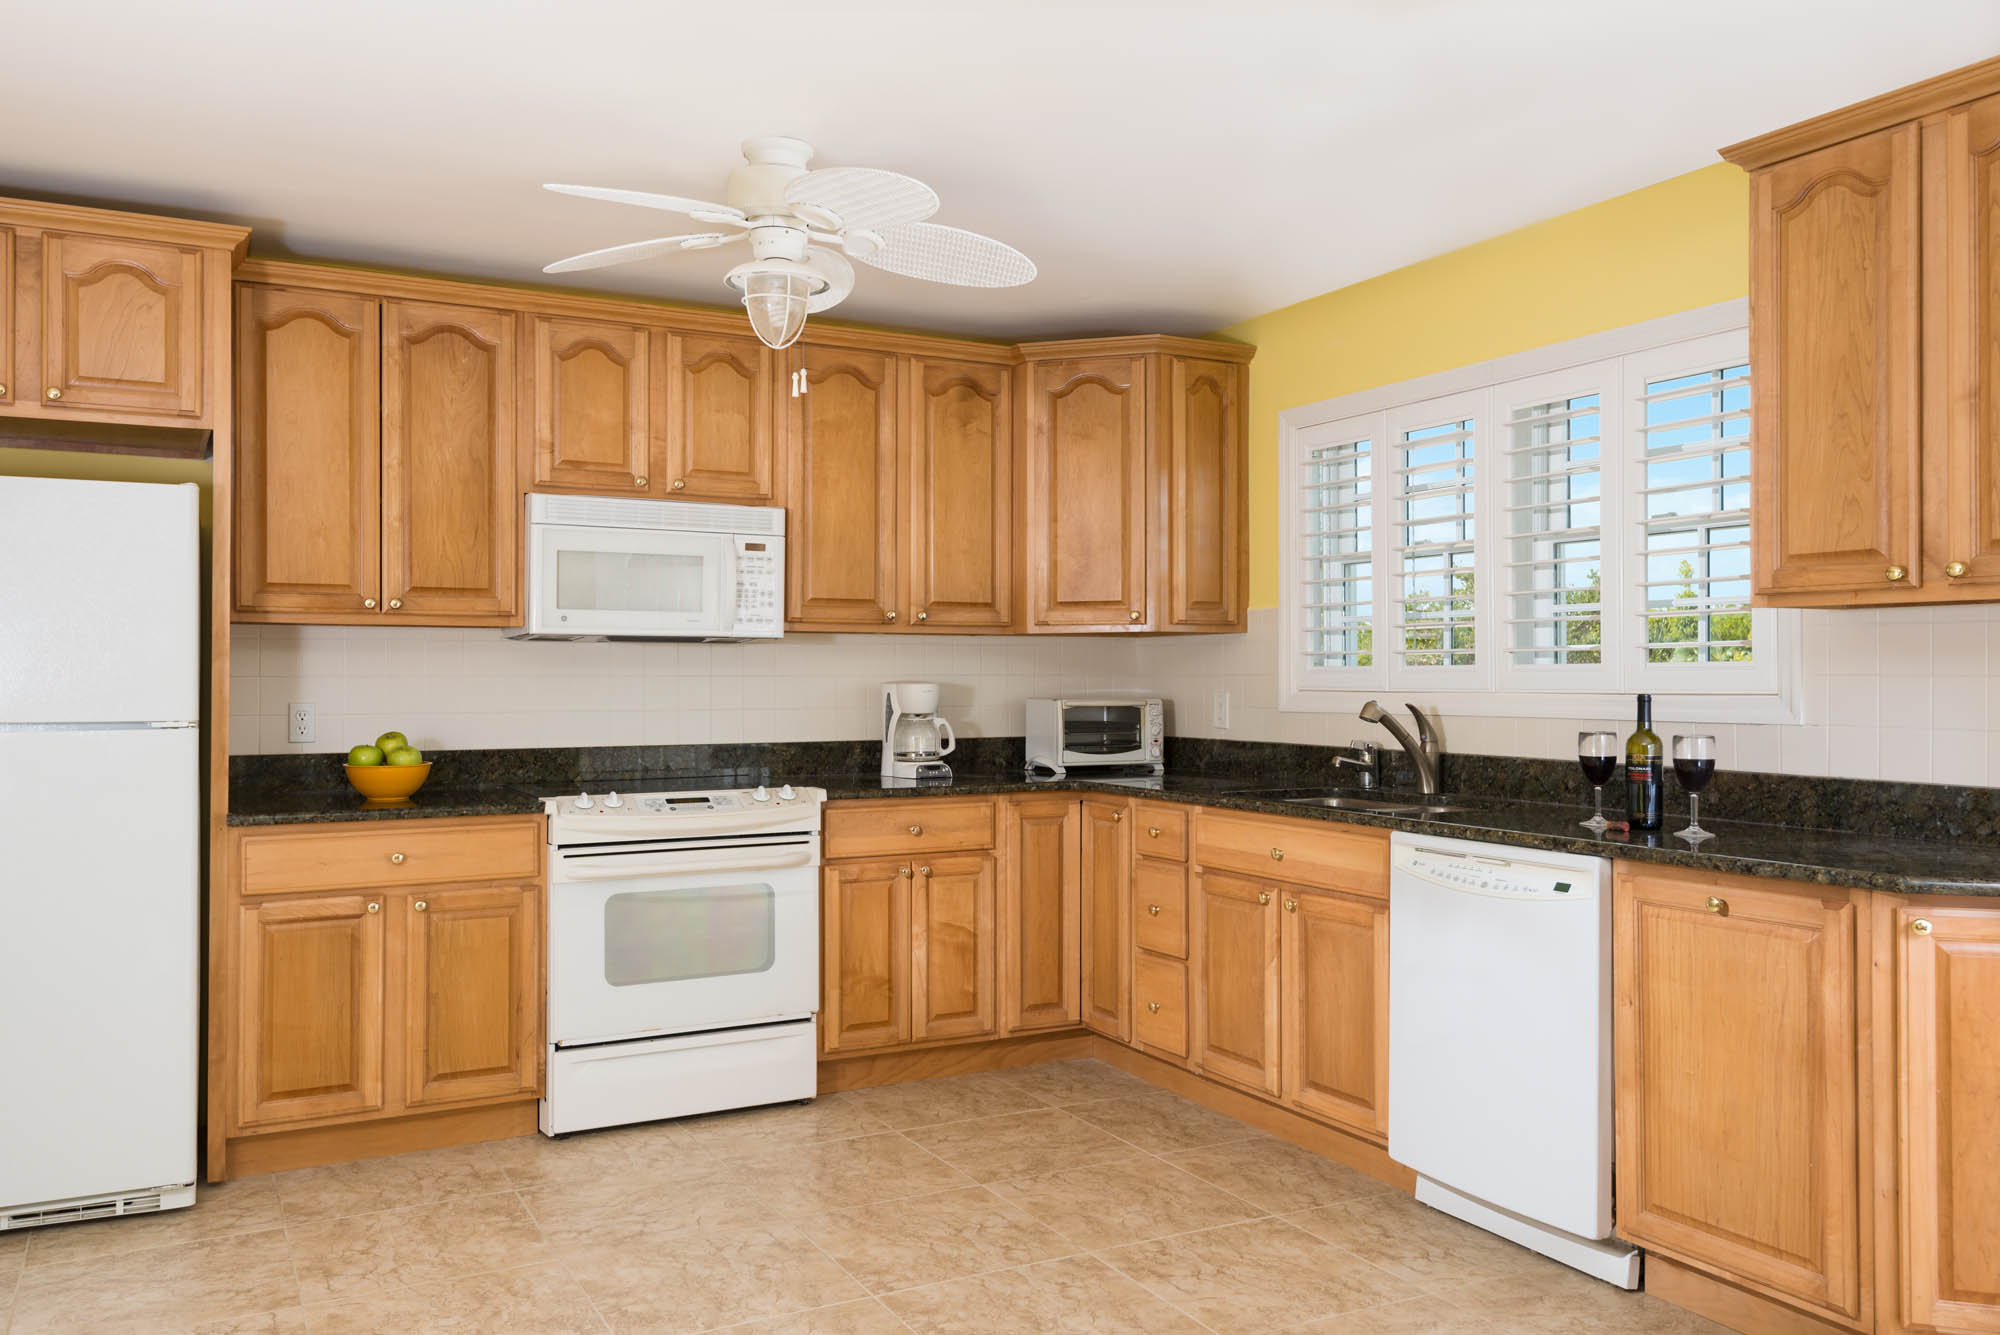 This Turks and Caicos villa rental has two fully equipped kitchens, one on the upper level and this one beach level.